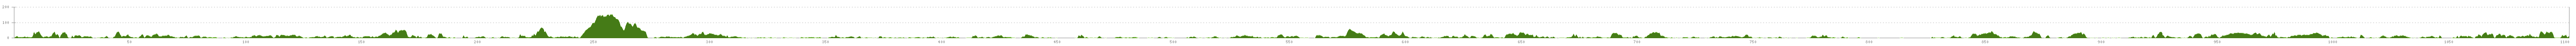 Elevation profile Cycle Tour Ueckeritz - Flensburg